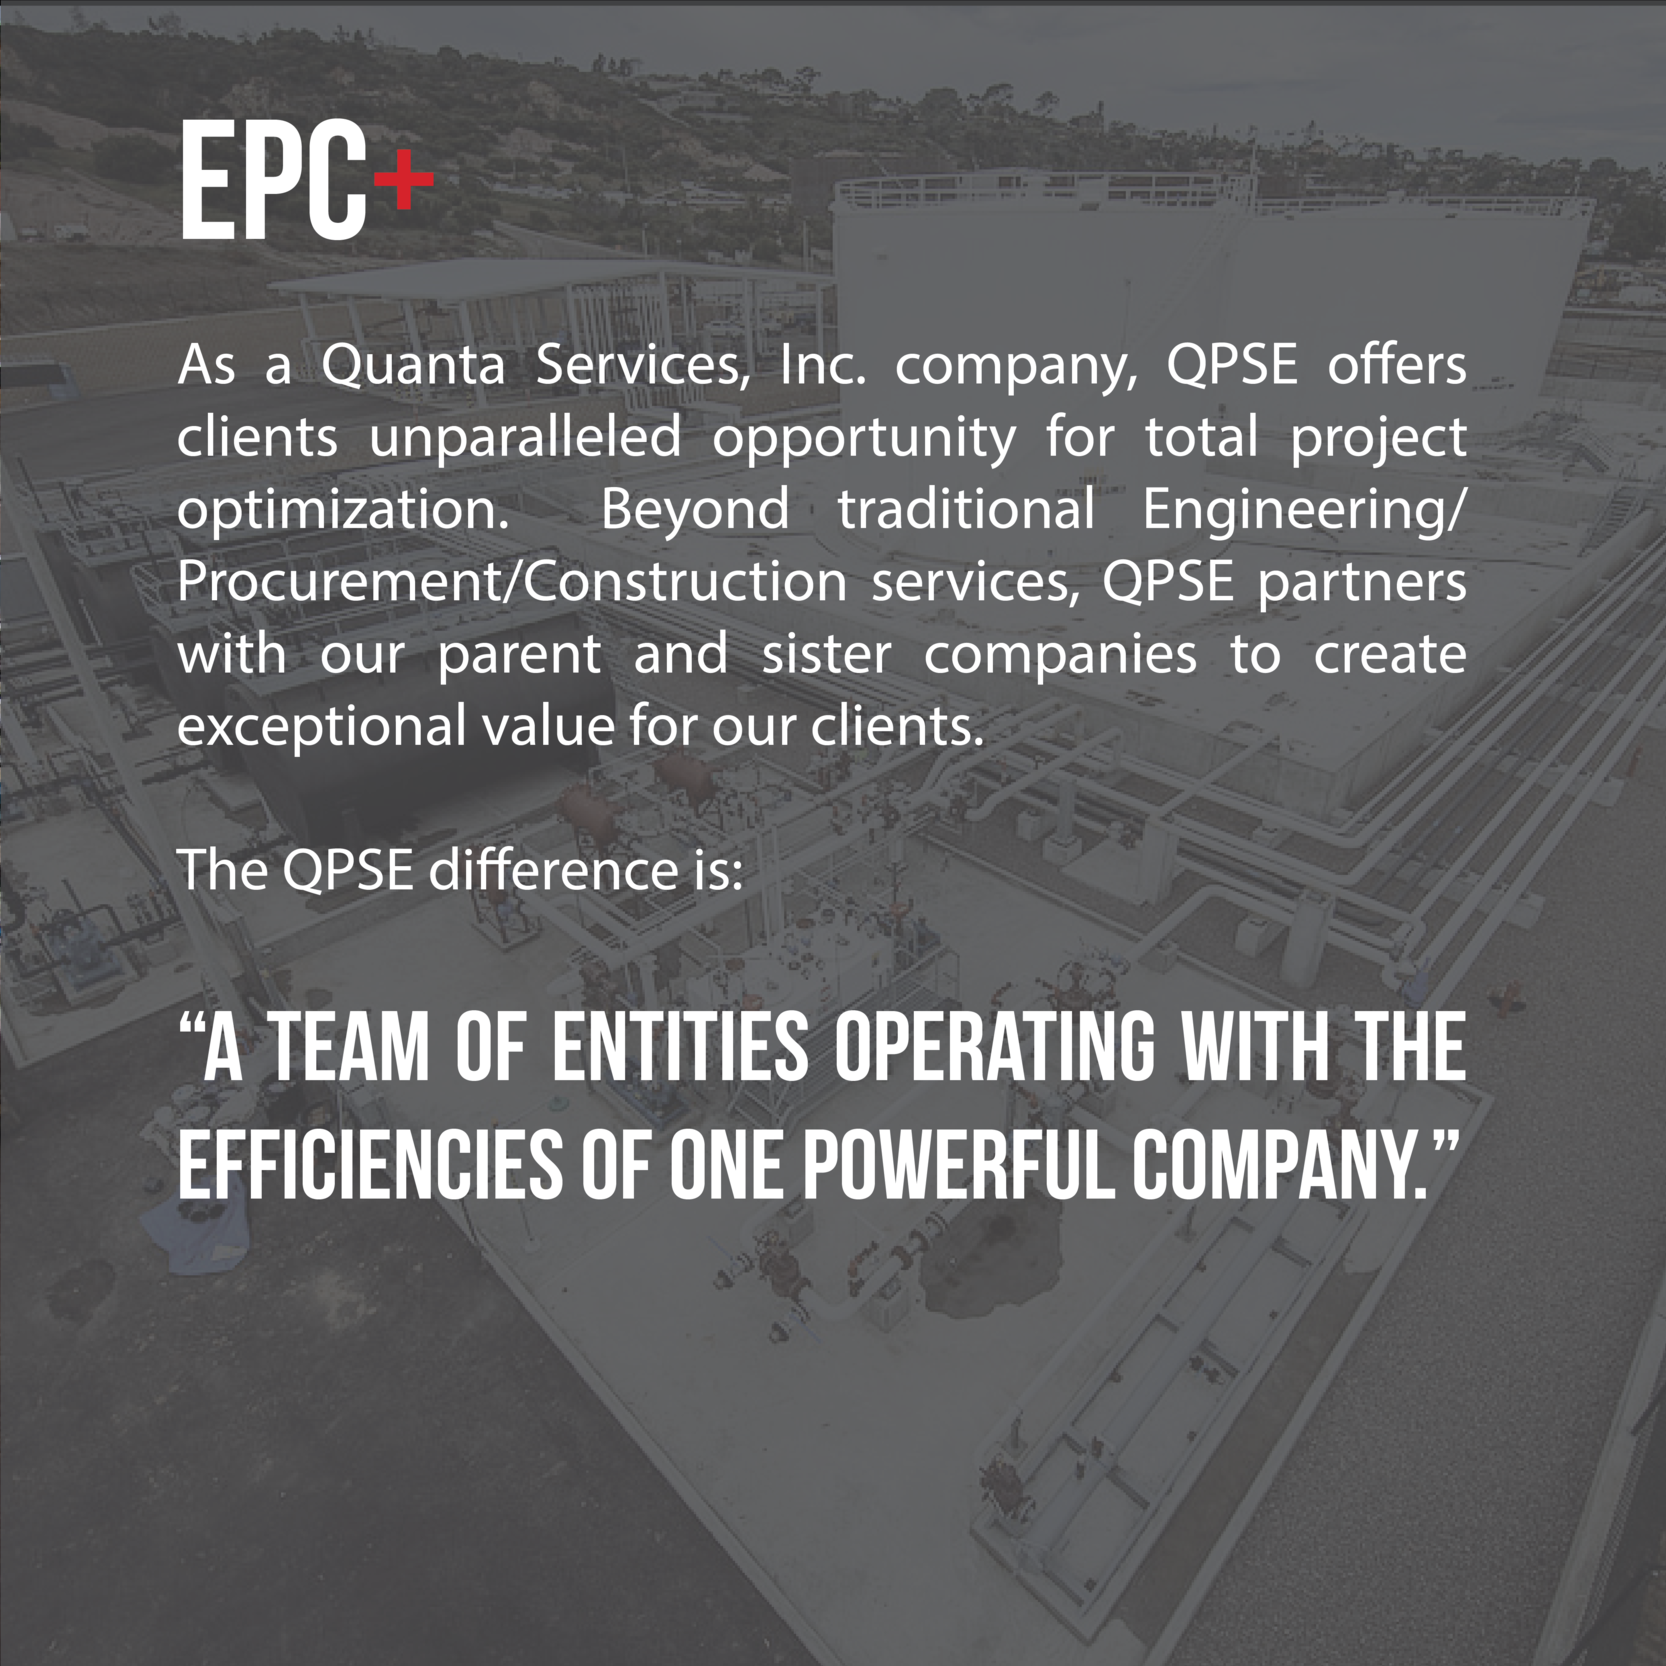 QPSE, project, optimize, optimization, engineering, procurement, construction, value, pipeline, facilities, oil, gas, specialty, contractor, effient, efficiency, turnkey, solutions